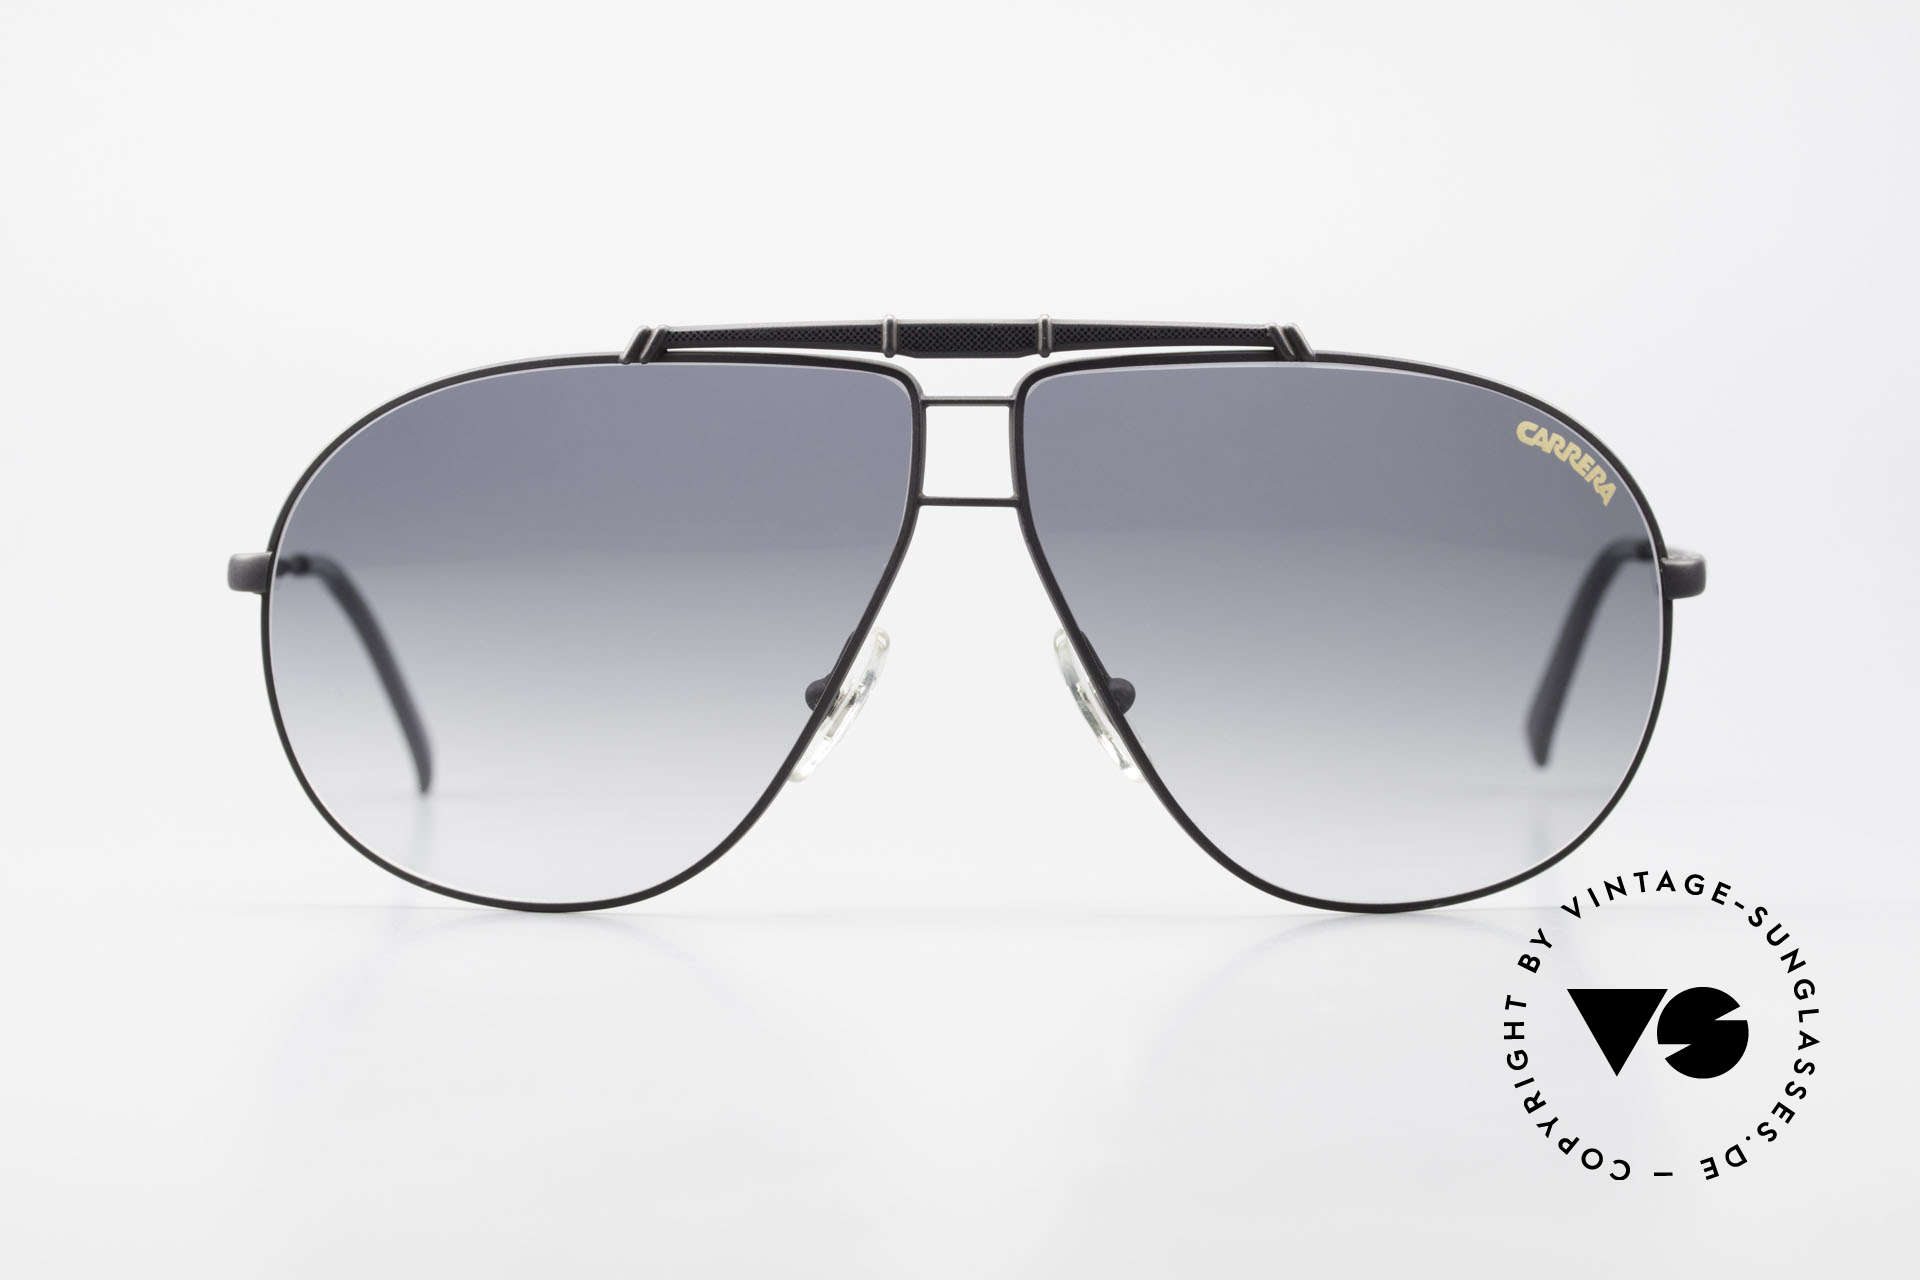 Carrera 5401 Large 80's Shades With Extra Lenses, mod. 5401 Strato Large, size 64/09, Sport Performance, Made for Men